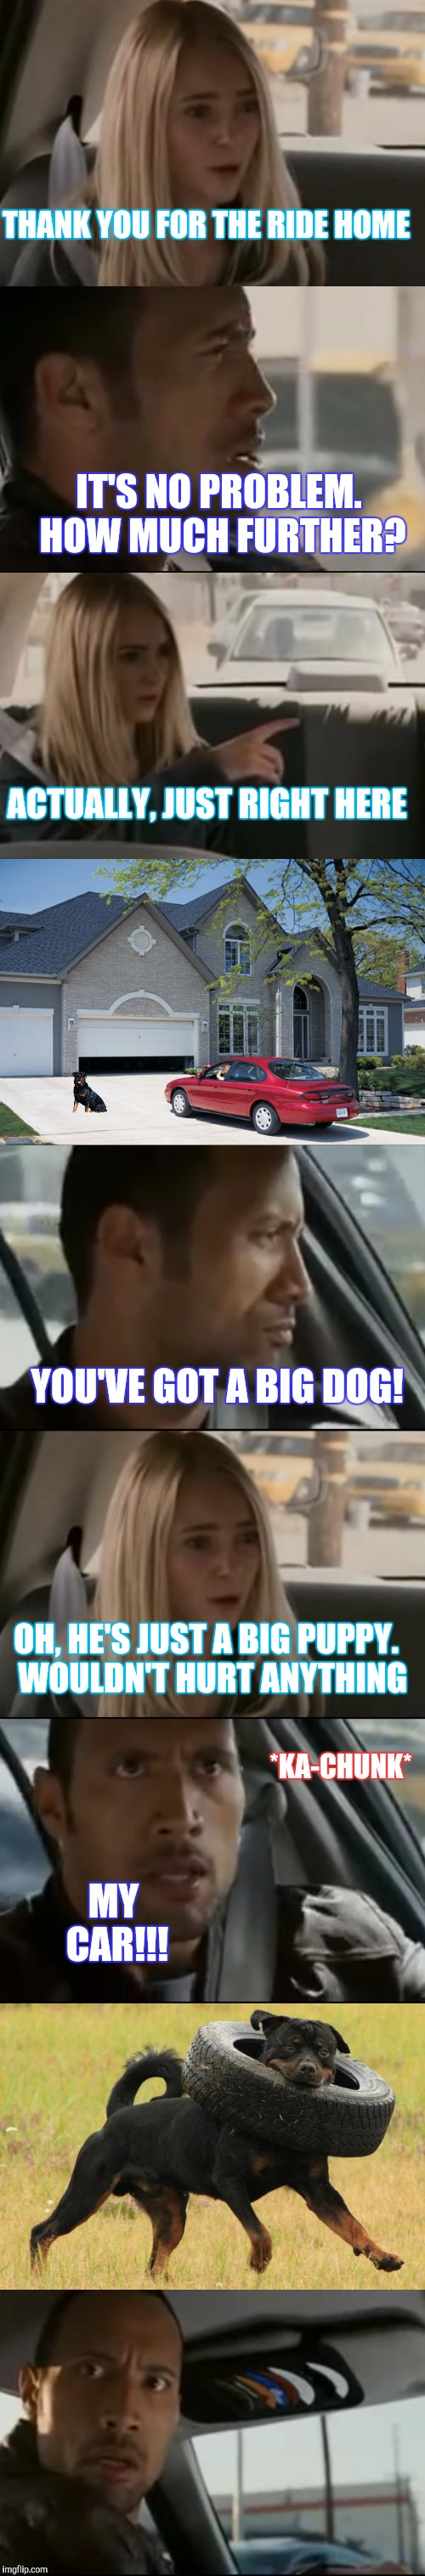 "THEY'RE ALWAYS "" JUST A PUPPY"" 